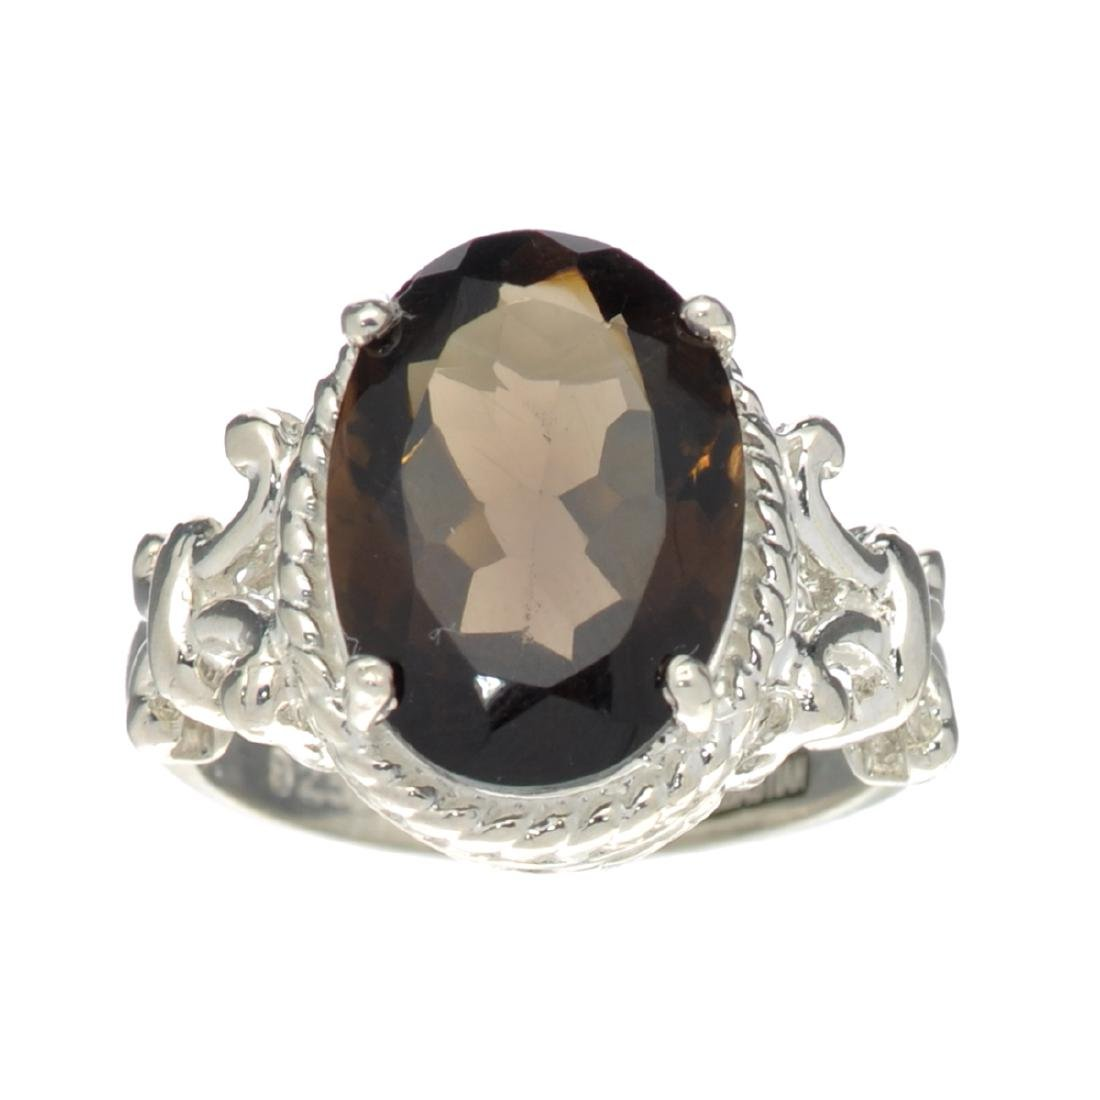 APP: 0.5k Fine Jewelry Designer Sebastian, 3.91CT Brown